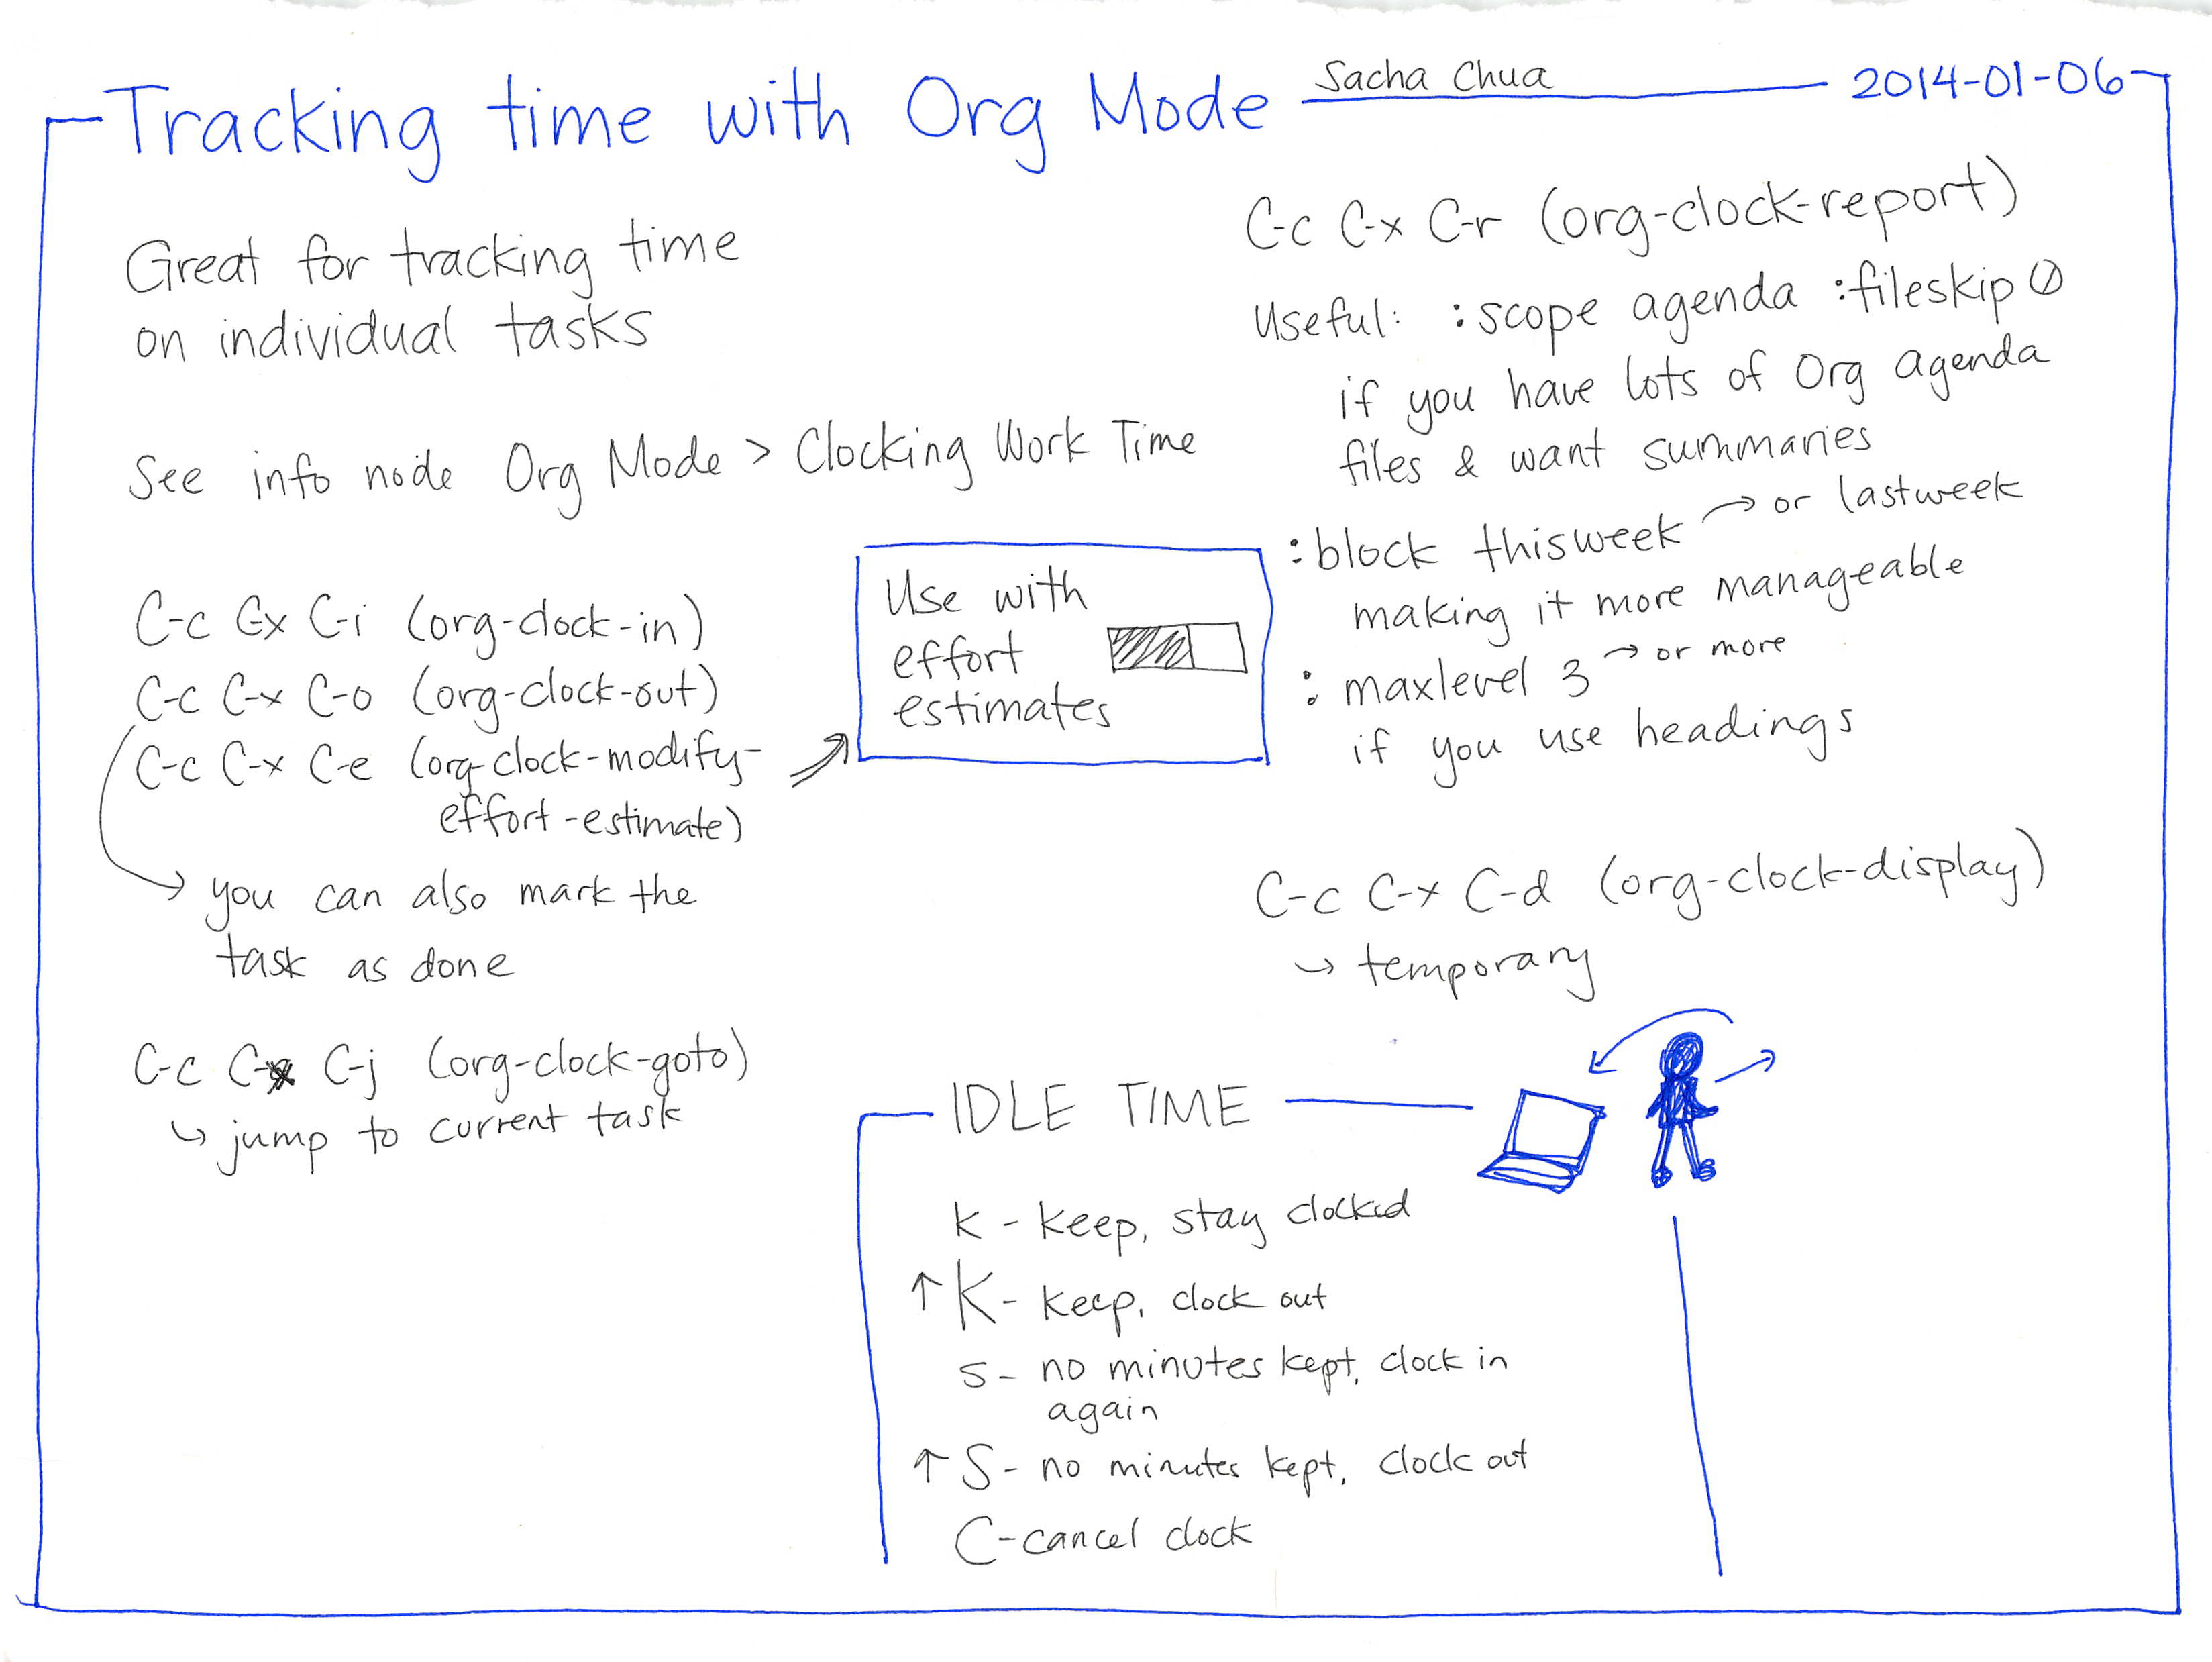 A Baby Steps Guide to Managing Your Tasks with Org